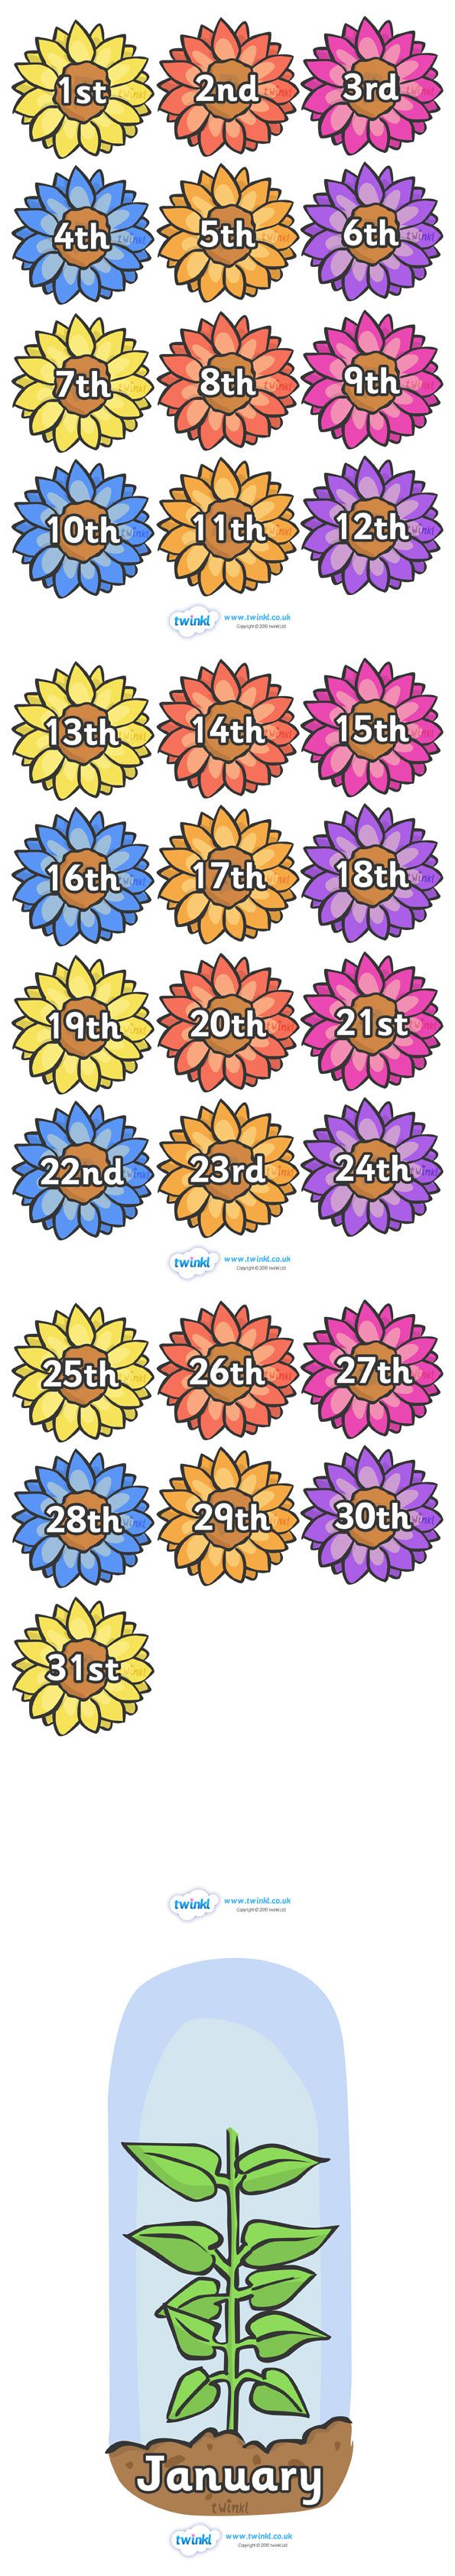 Twinkl Resources >> Flower Calendar >> Classroom printables for Pre-School, Kindergarten, Primary School and beyond! flowers, calendar, days, months, colour, themed